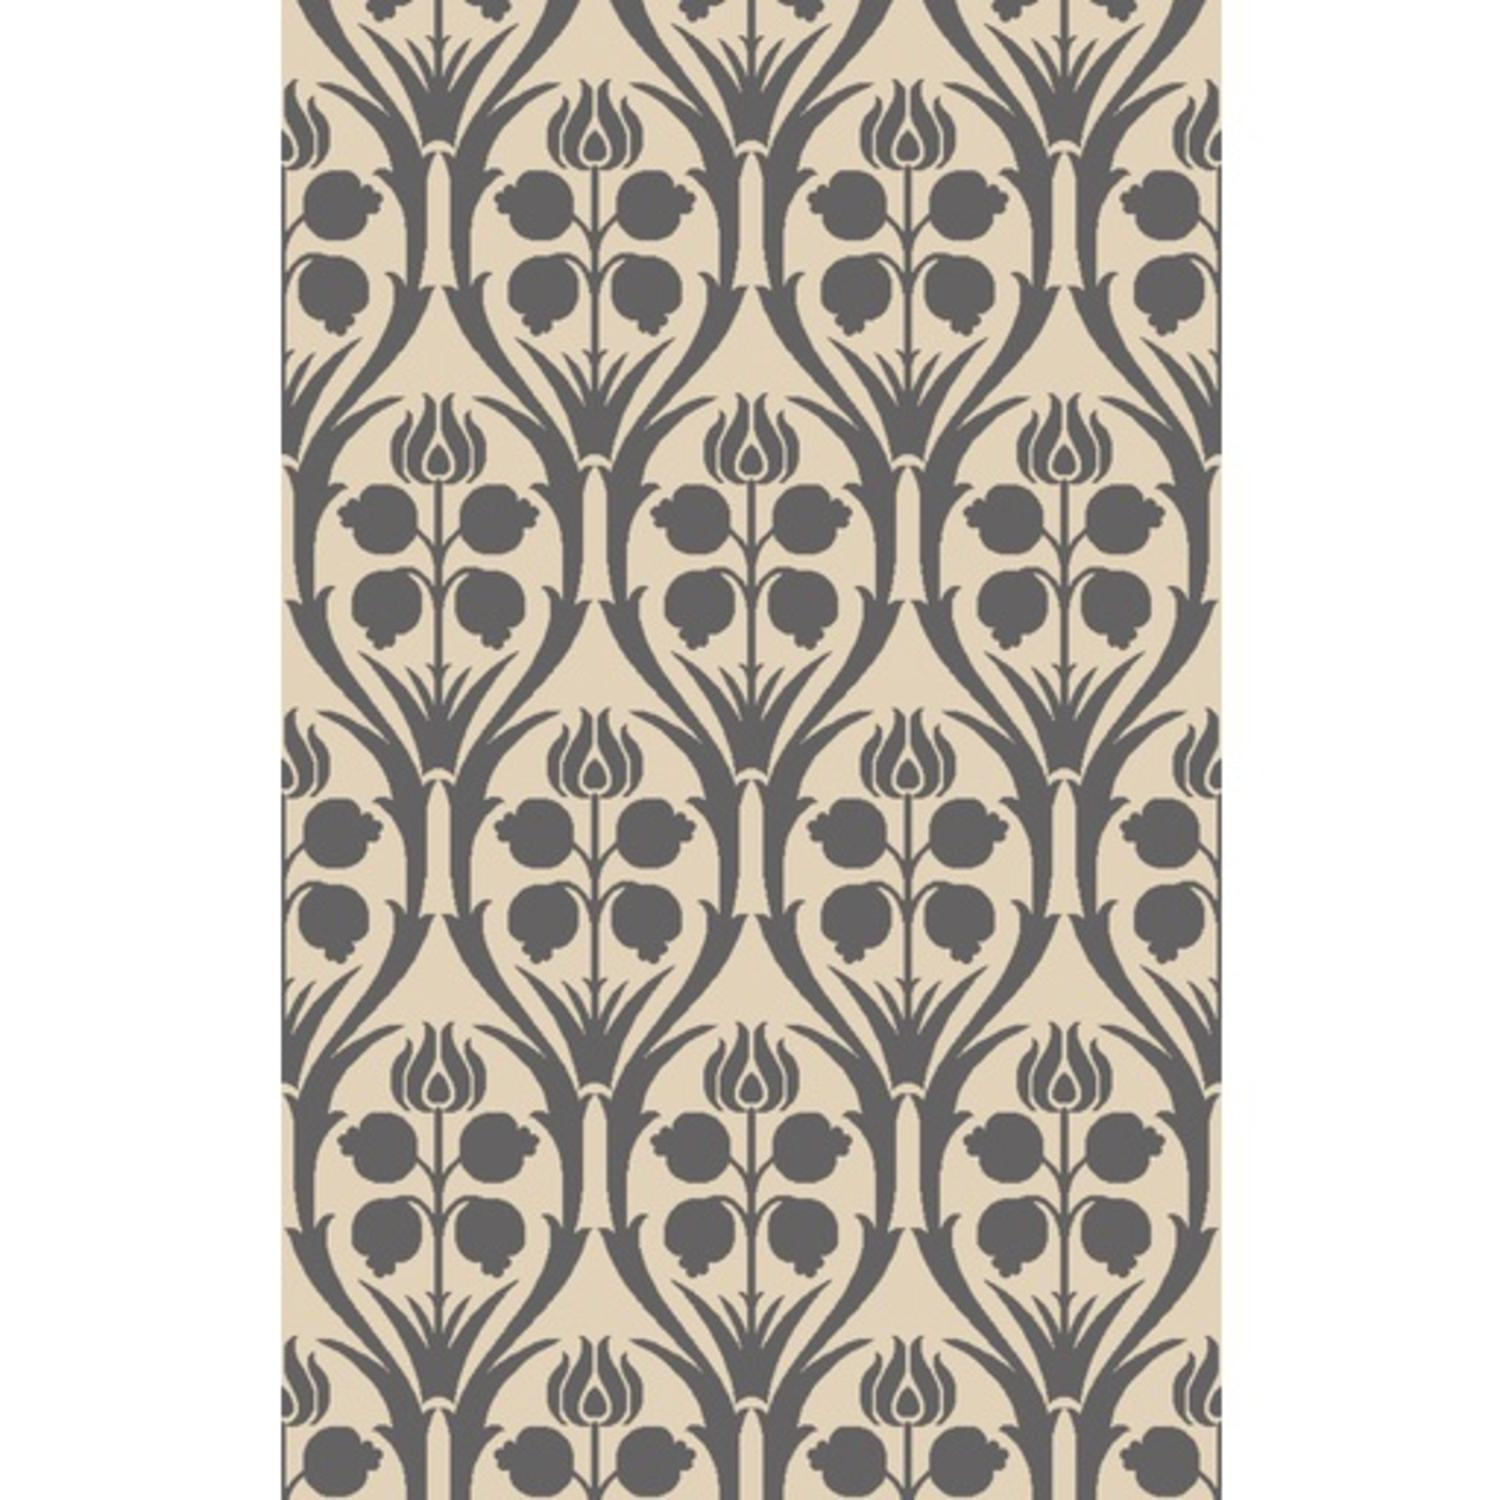 4' x 6' Preciosa Ivory, Charcoal and Dove Gray Hand Hooked Wool Area Throw Rug